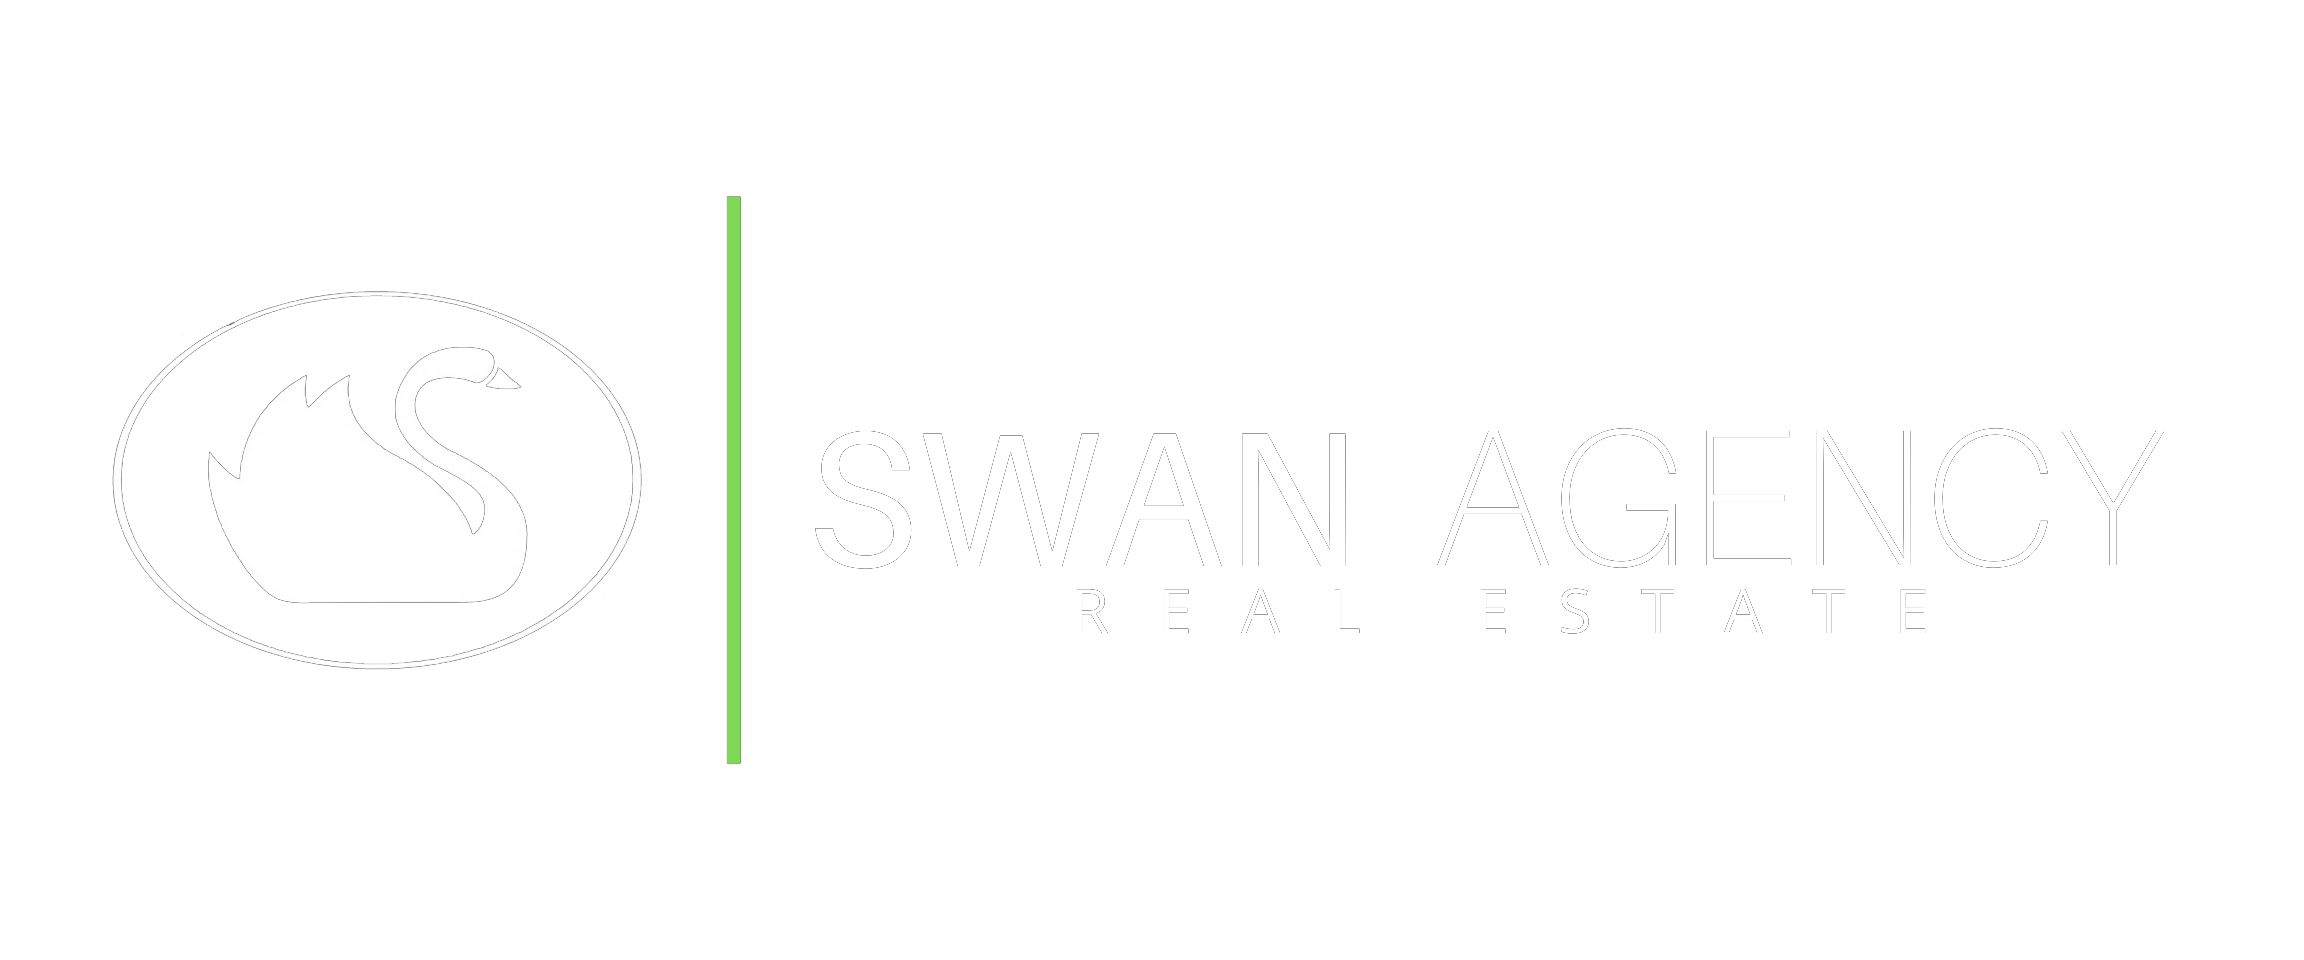 The Swan Agency Logo